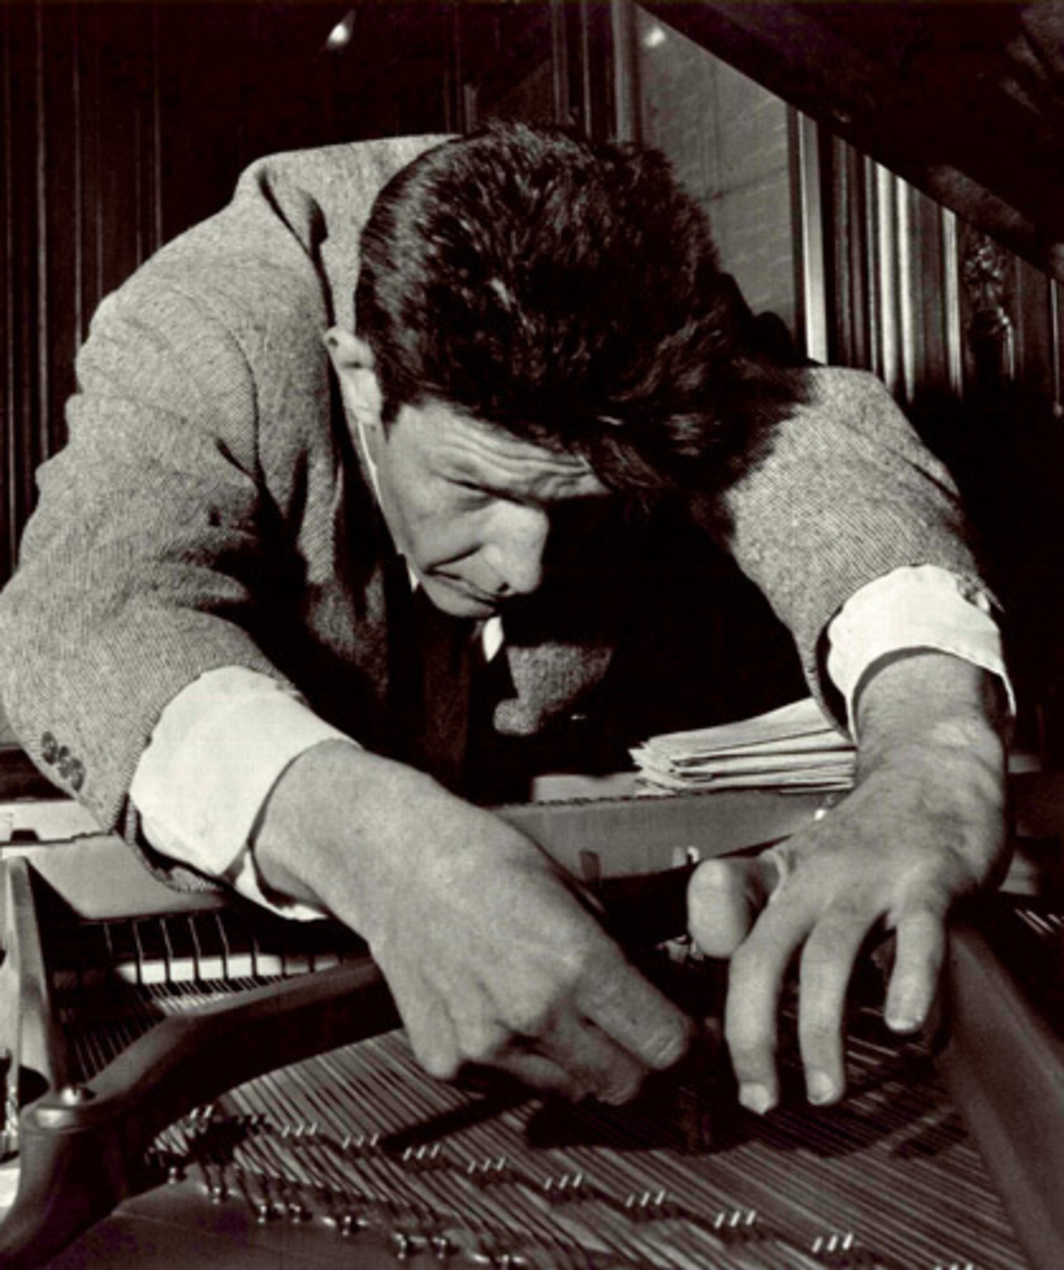 John Cage preparing a piano, ca. 1950. Photo: Merce Cunningham Dance Company.